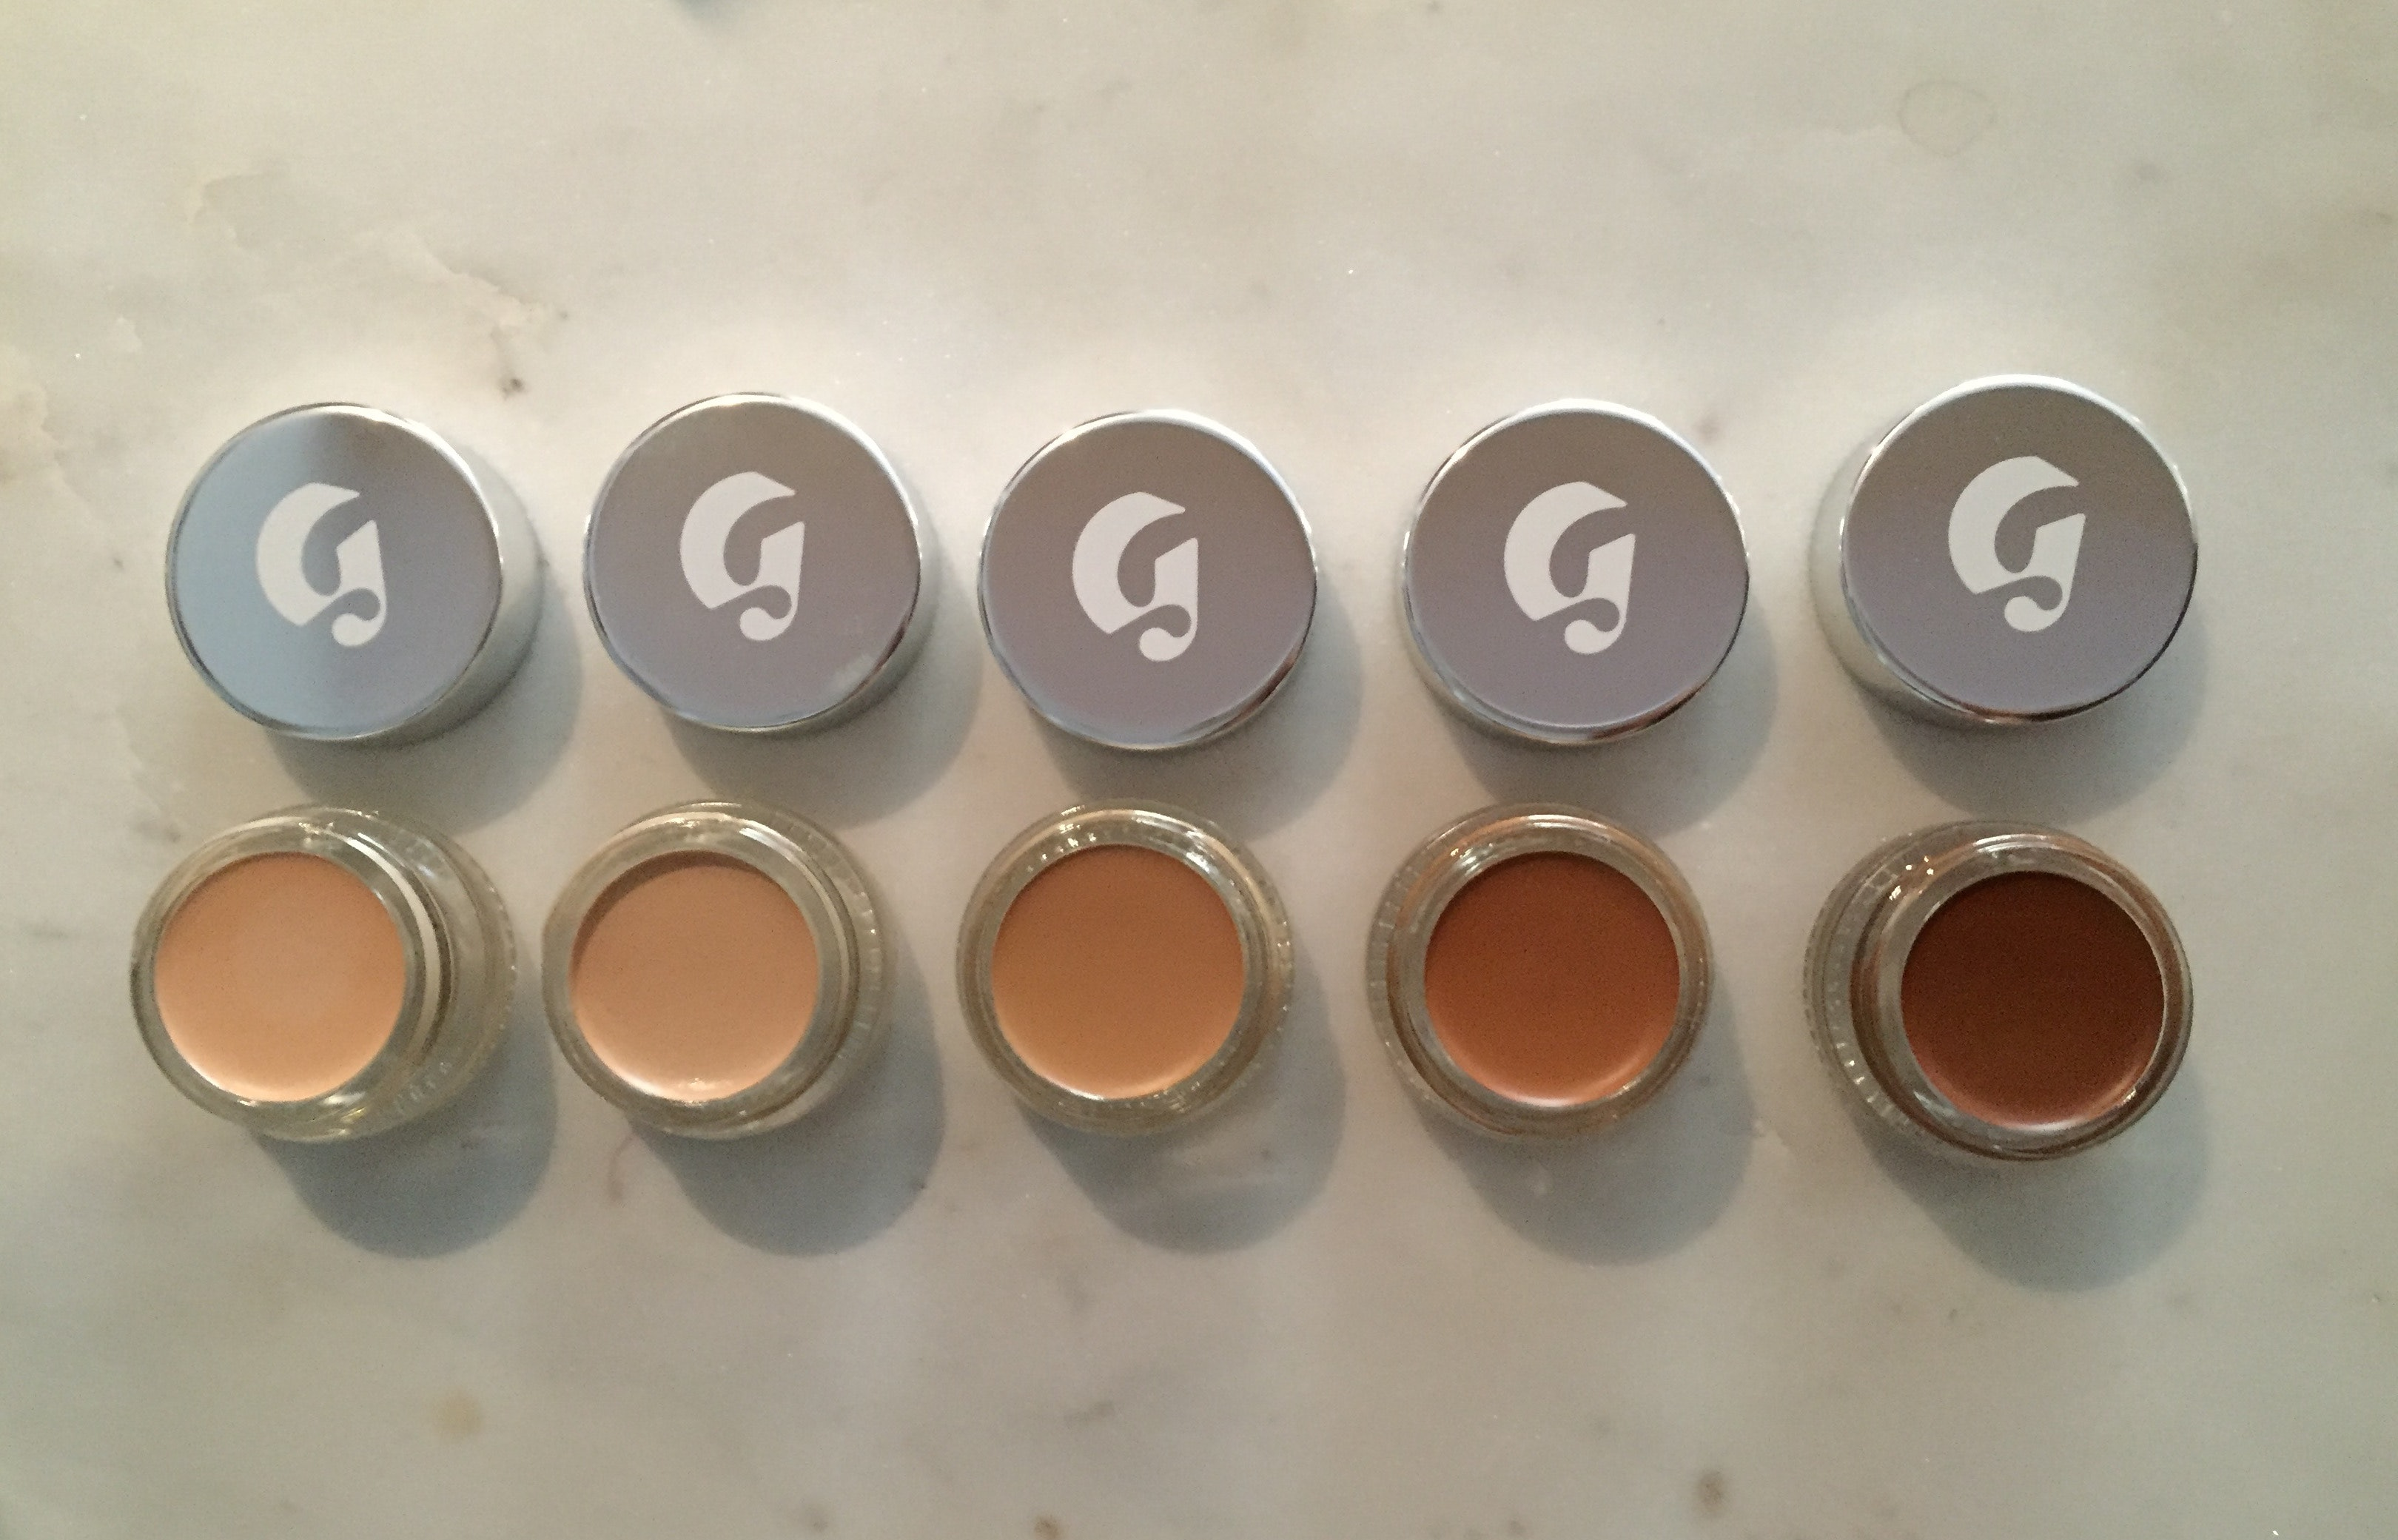 The Skincare Set by Glossier #20